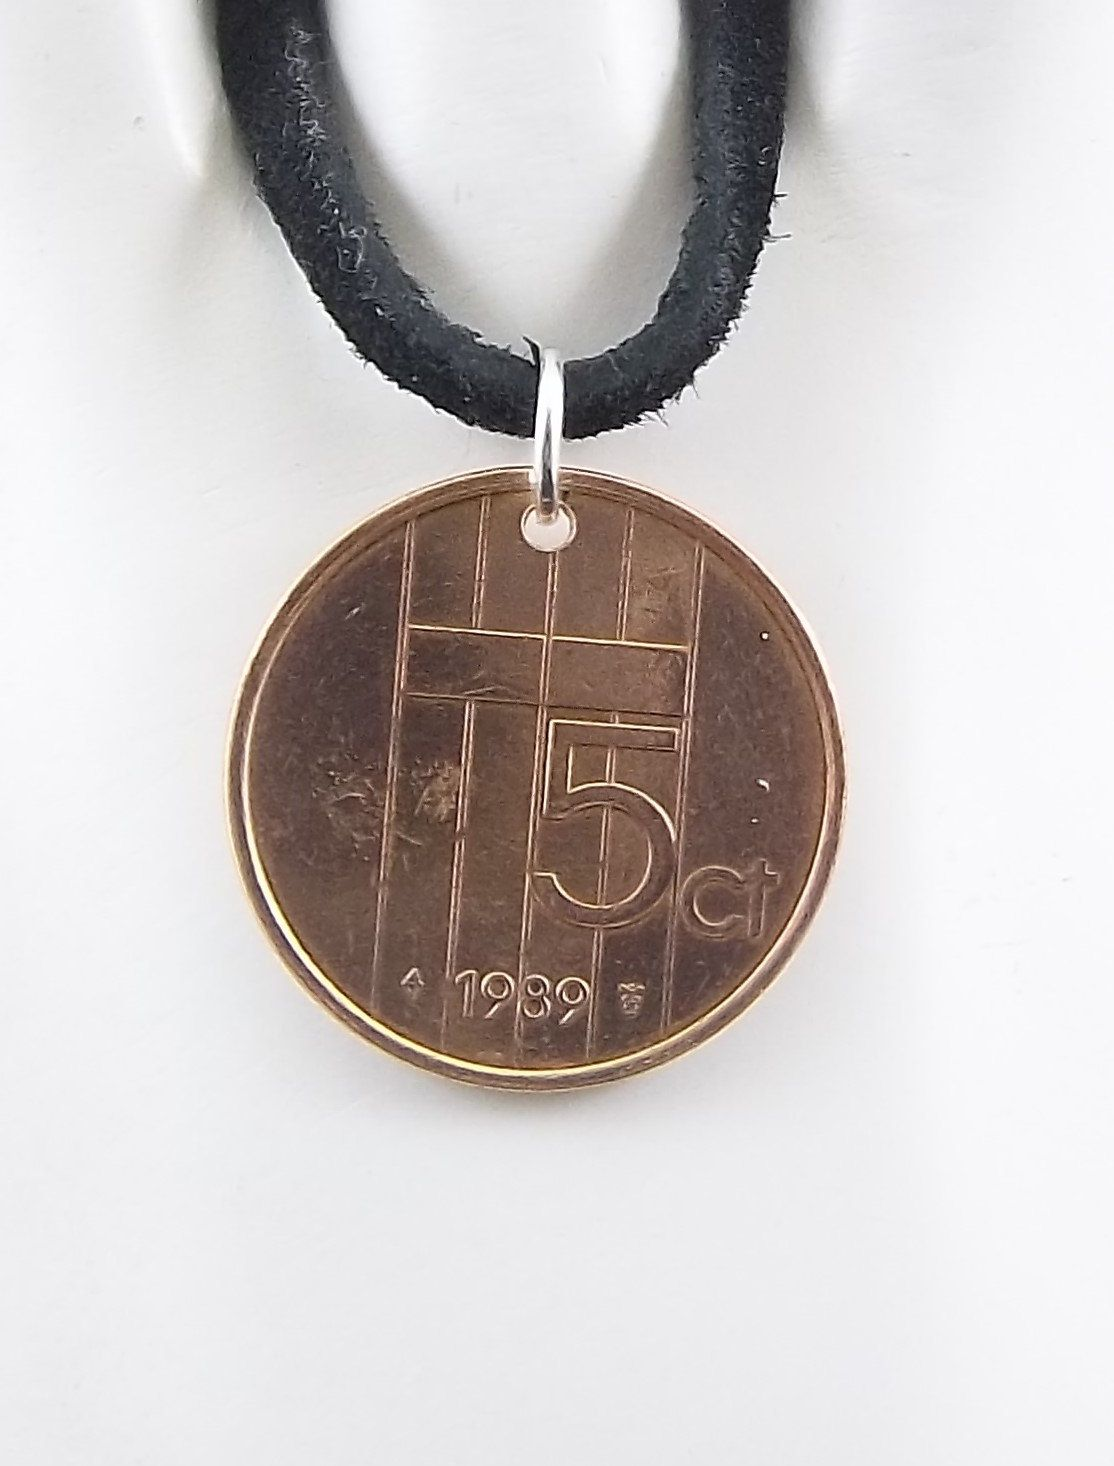 Netherlands Coin Necklace, 5 Cents, Coin Pendant, Leather Cord, Mens Necklace, Womens Necklace, Birth Year, 1989 by AutumnWindsJewelry on Etsy